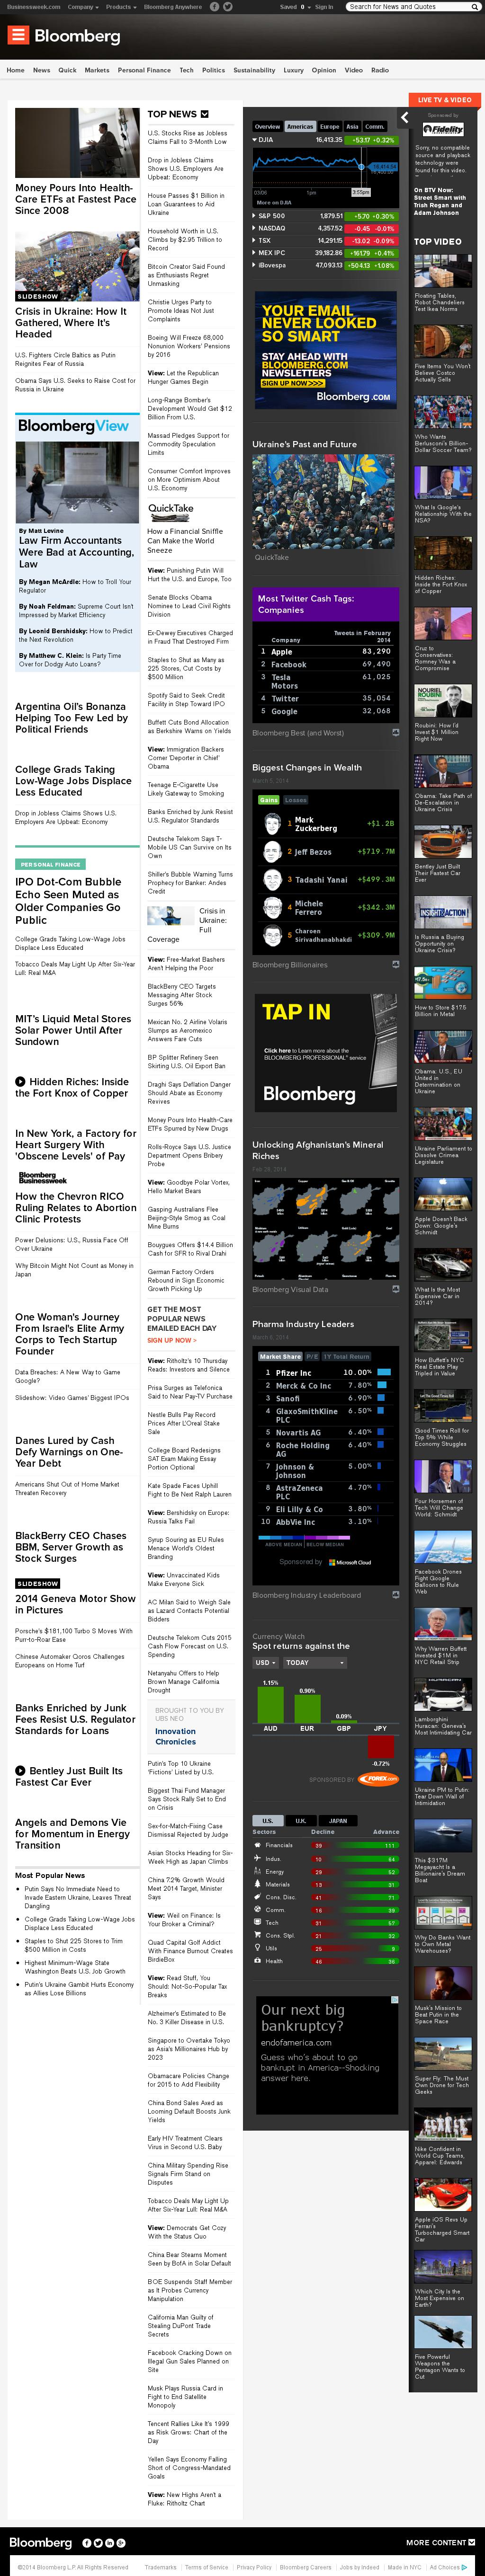 Bloomberg at Thursday March 6, 2014, 9 p.m. UTC